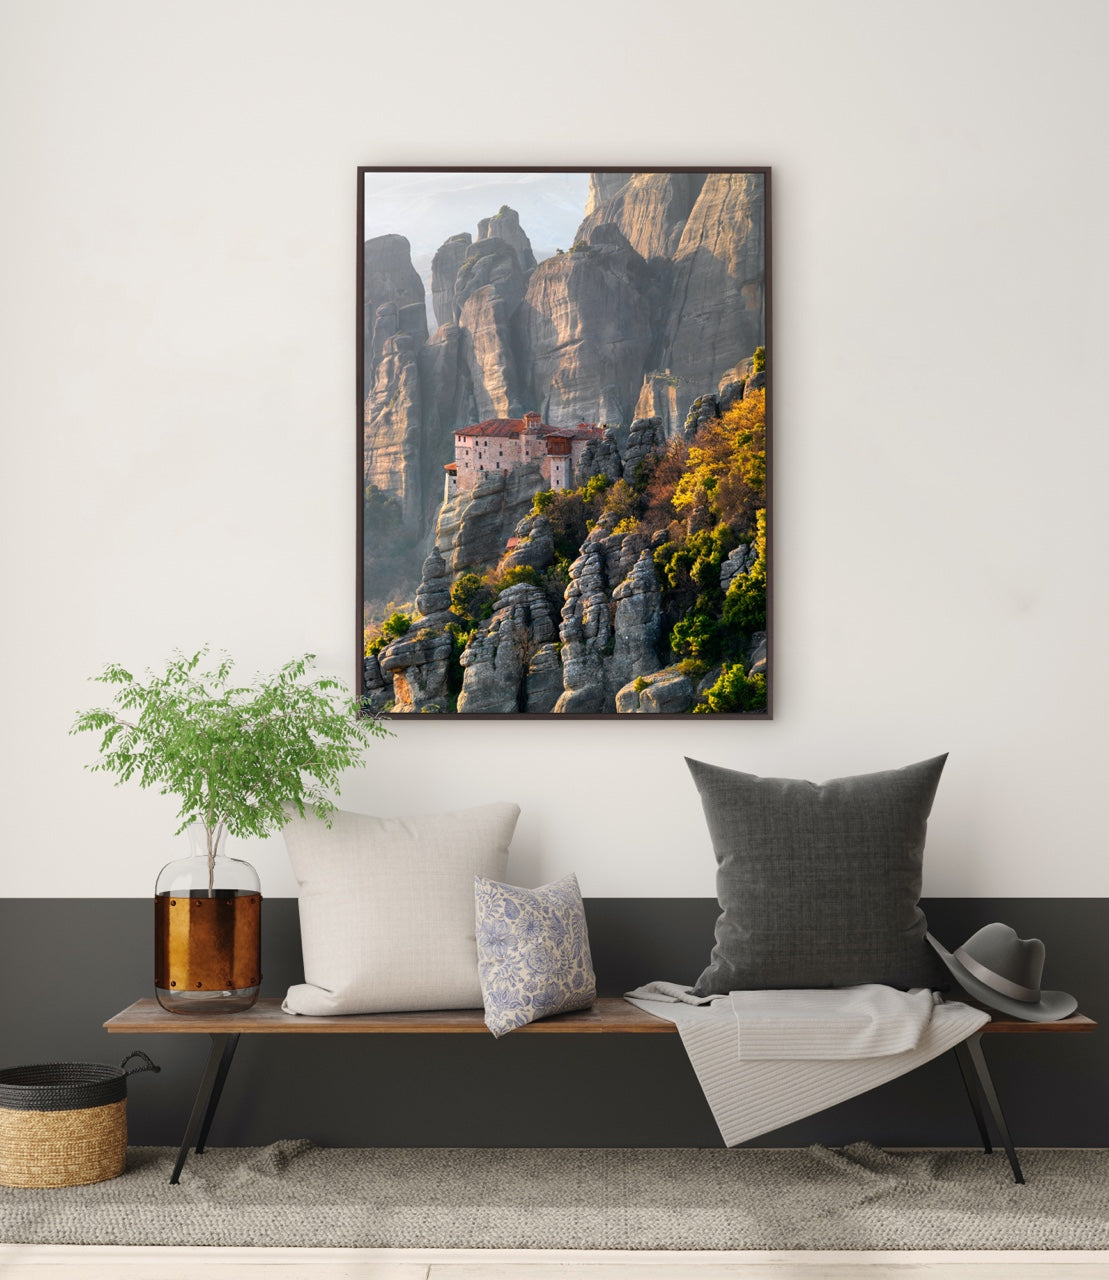 Framed photo wall art over sitting area